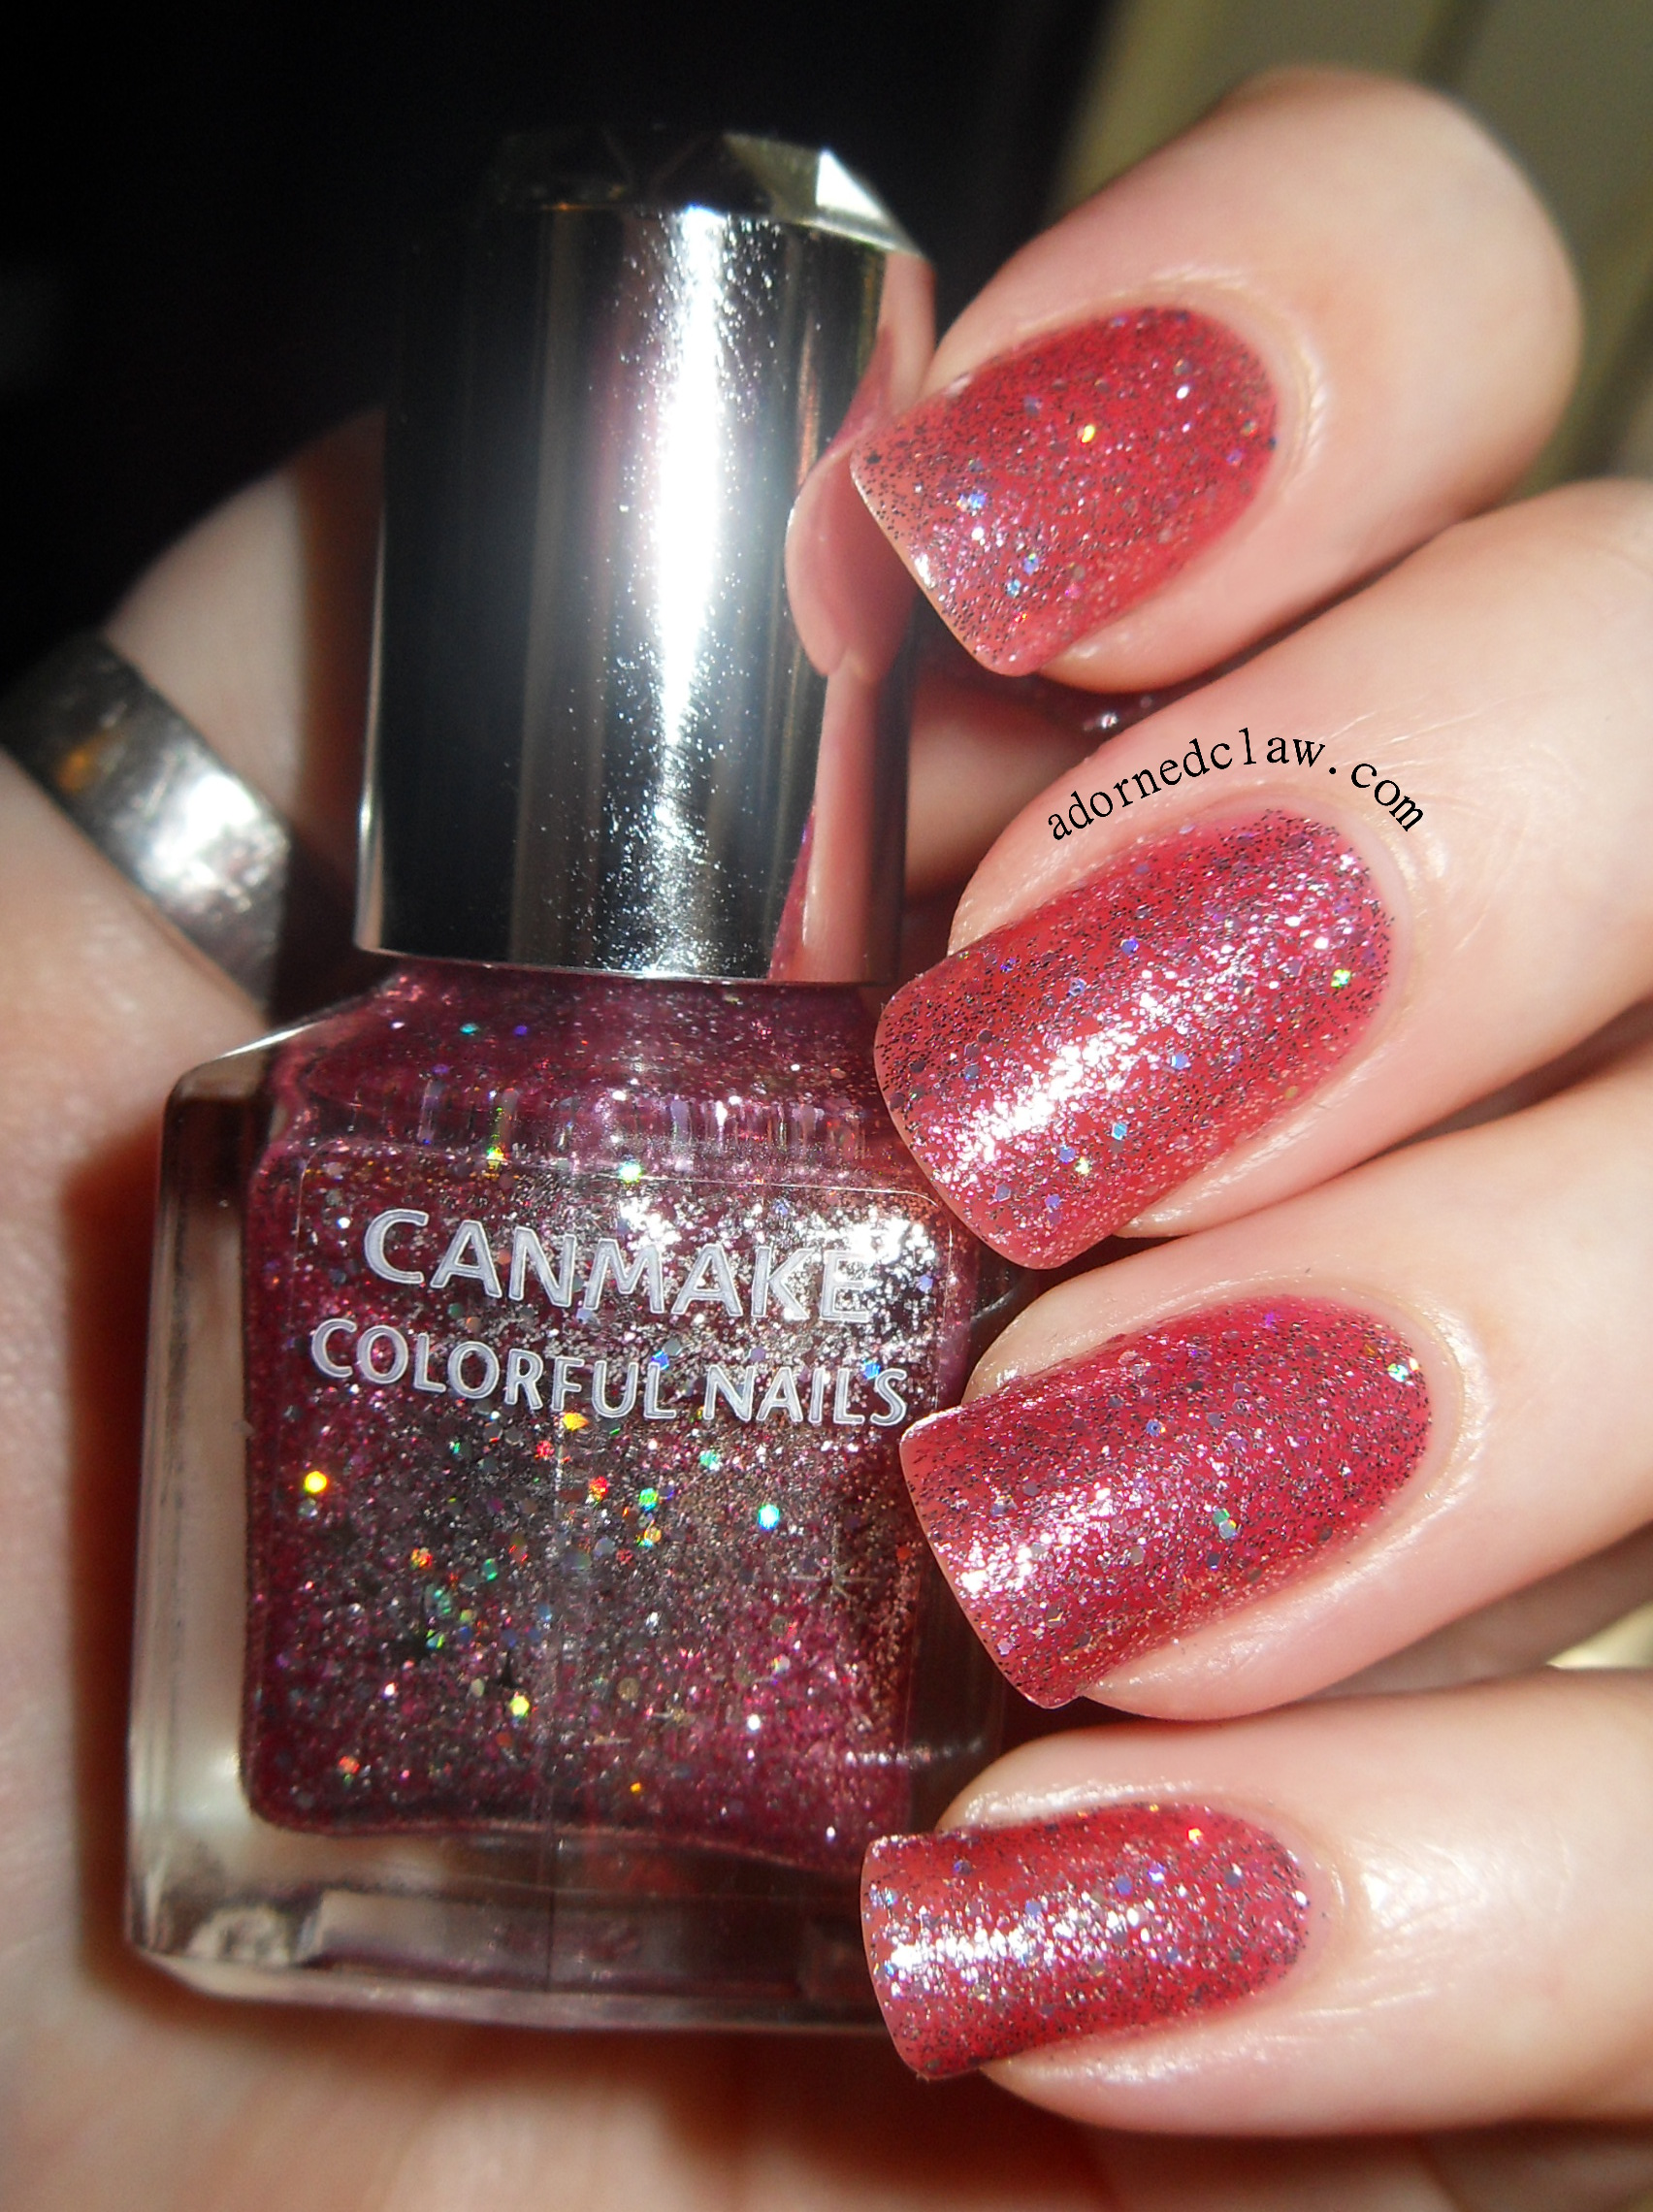 Canmake – Nail Polish From Japan! | The Adorned Claw